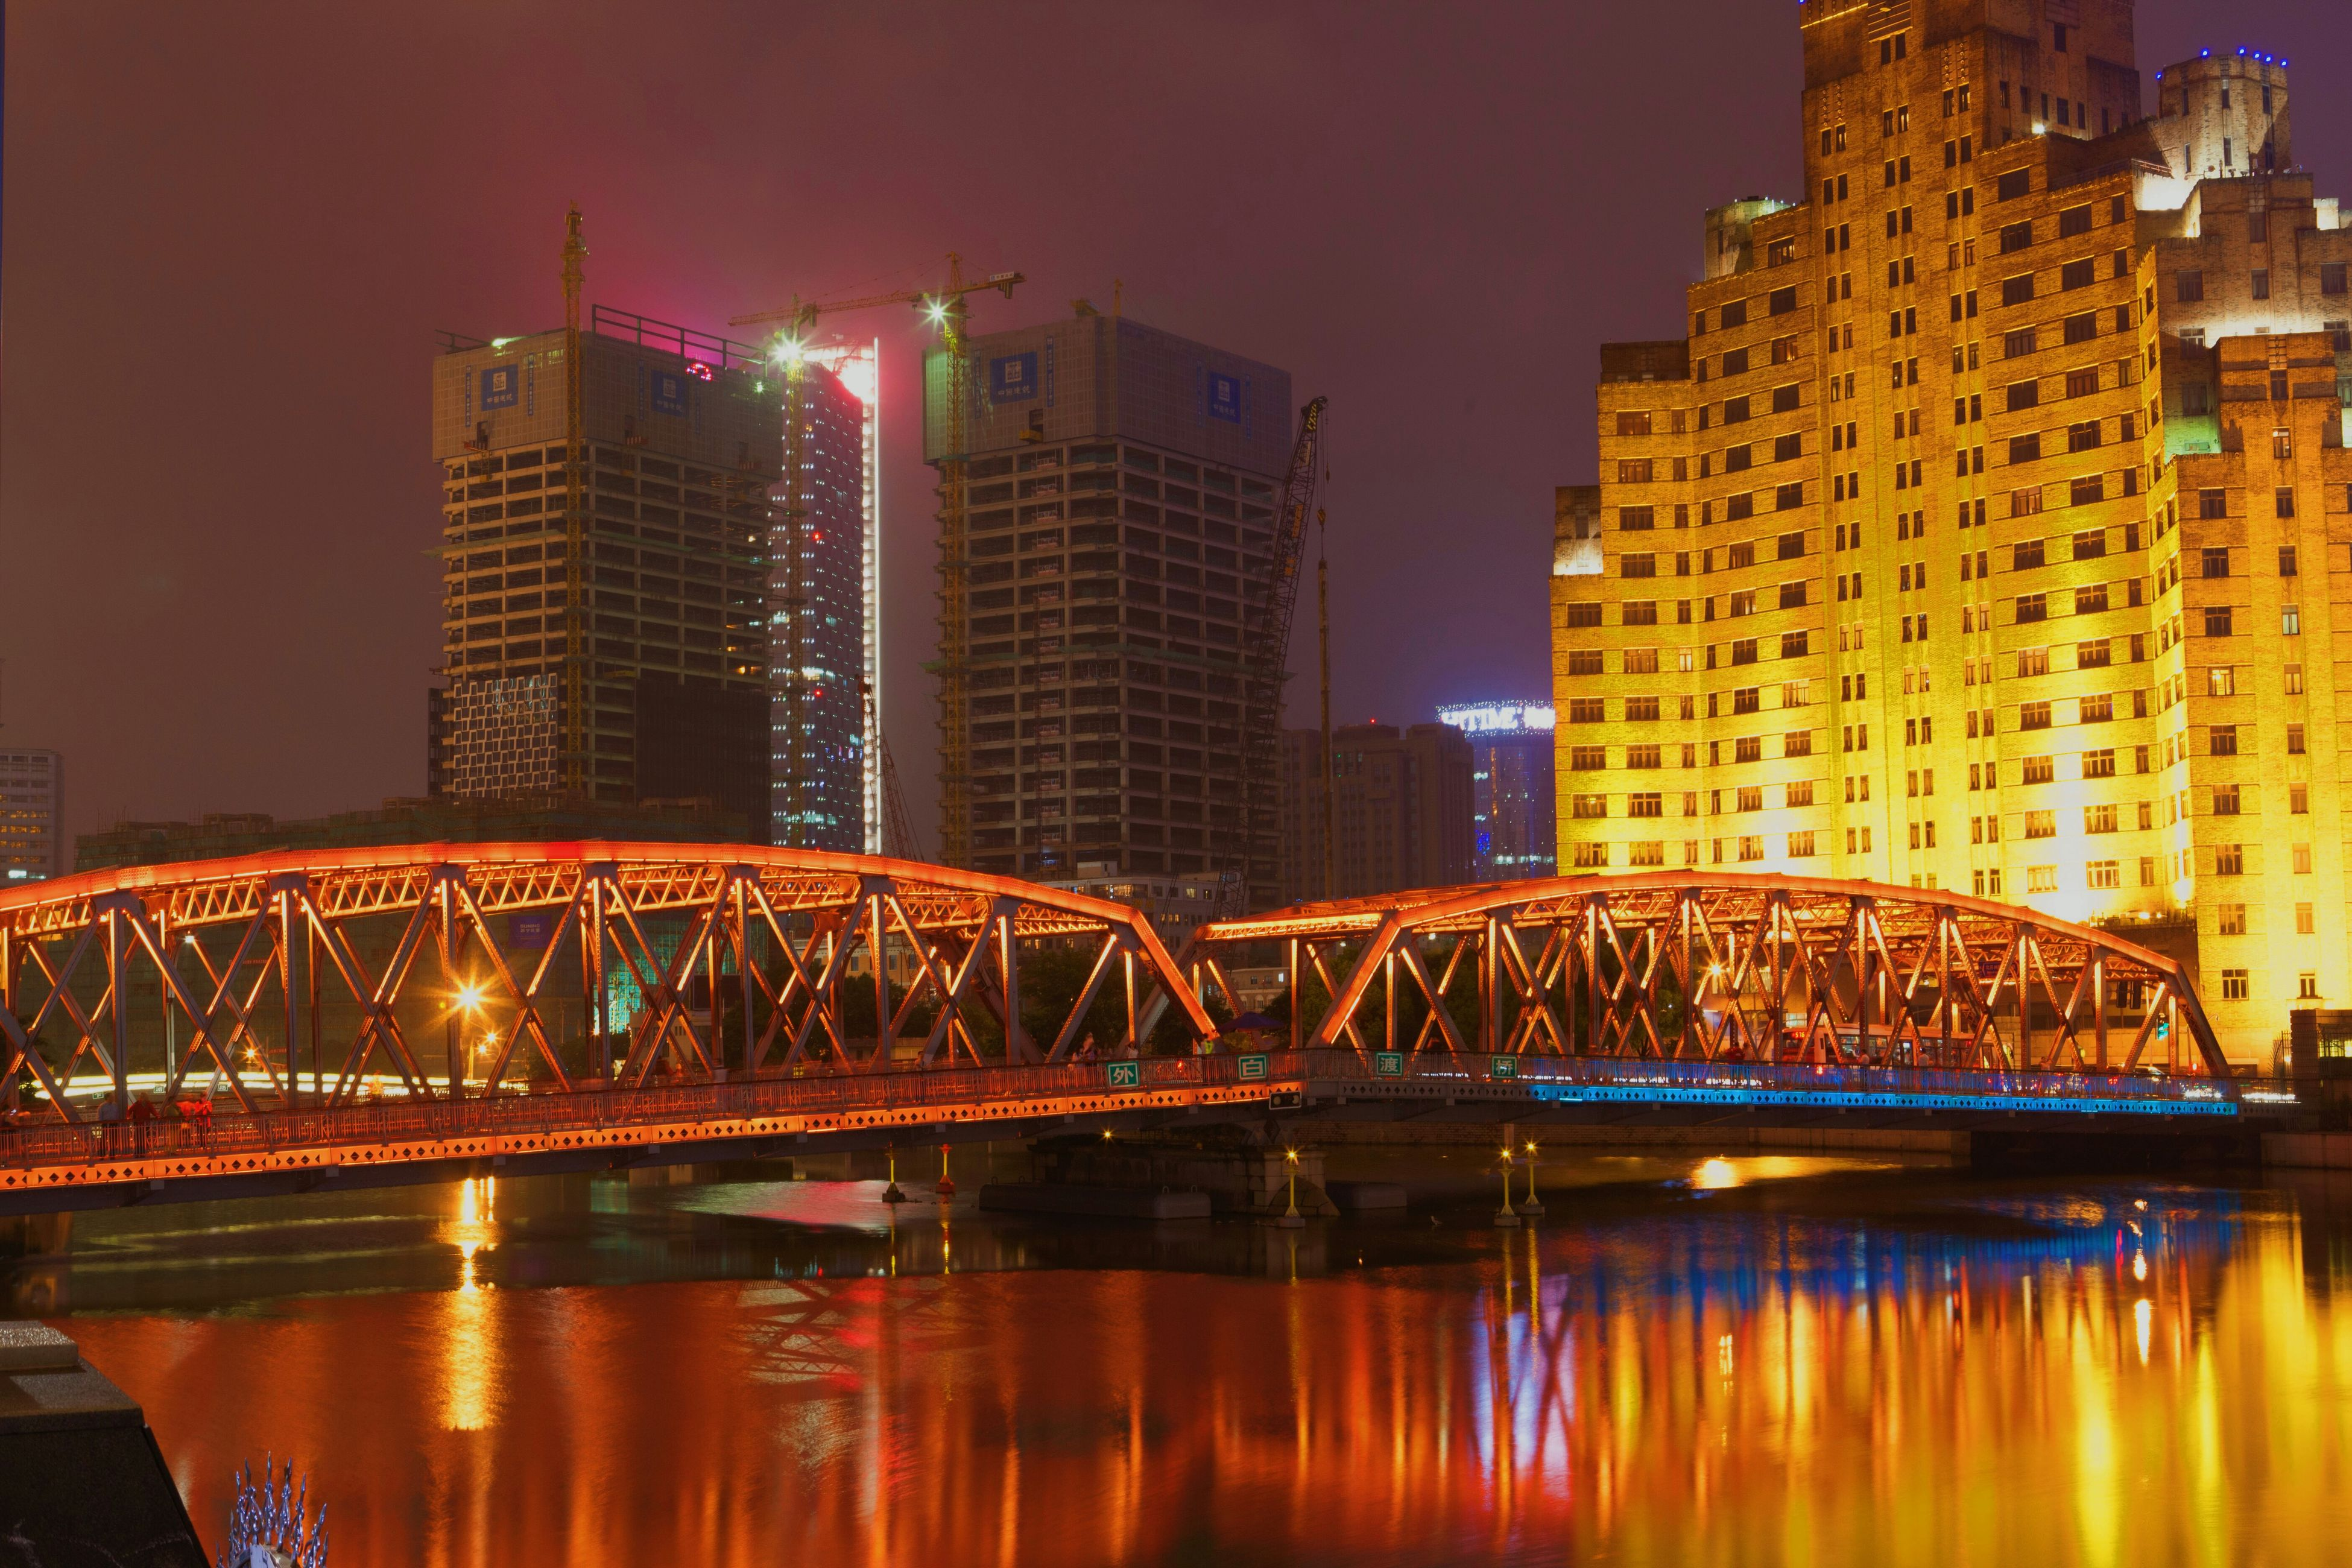 architecture, built structure, illuminated, building exterior, city, night, water, bridge - man made structure, river, connection, waterfront, capital cities, reflection, famous place, travel destinations, modern, skyscraper, cityscape, engineering, travel